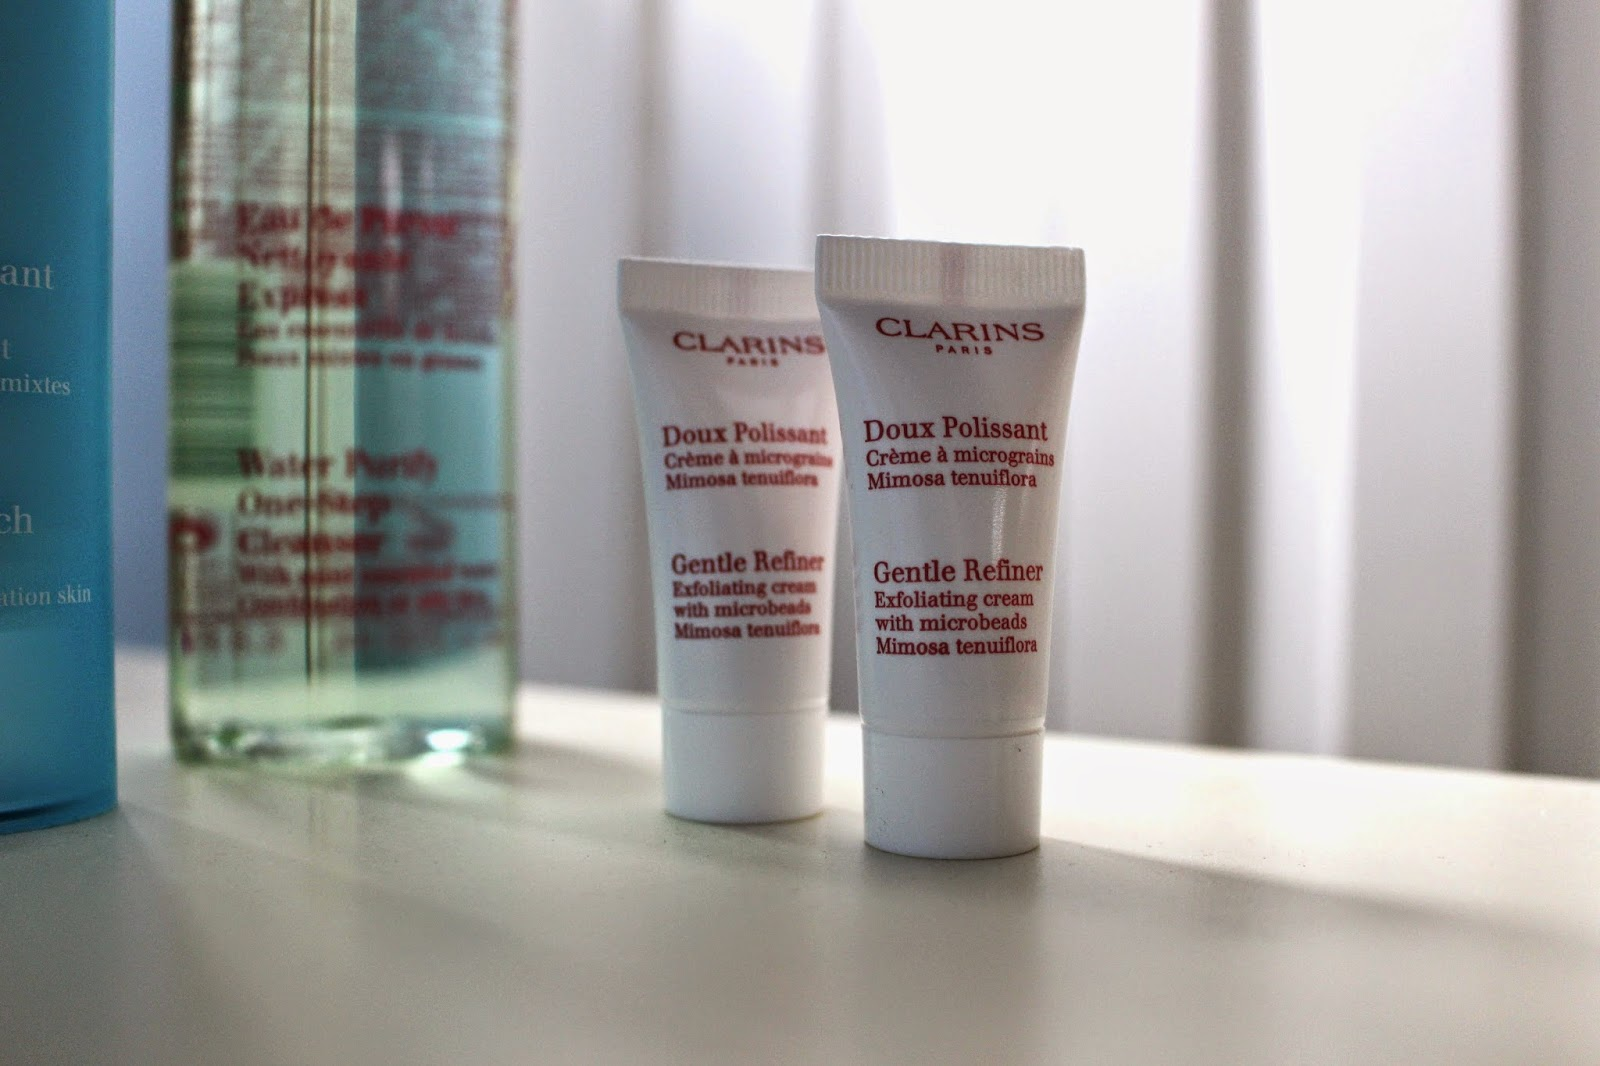 Clarins Skincare Products